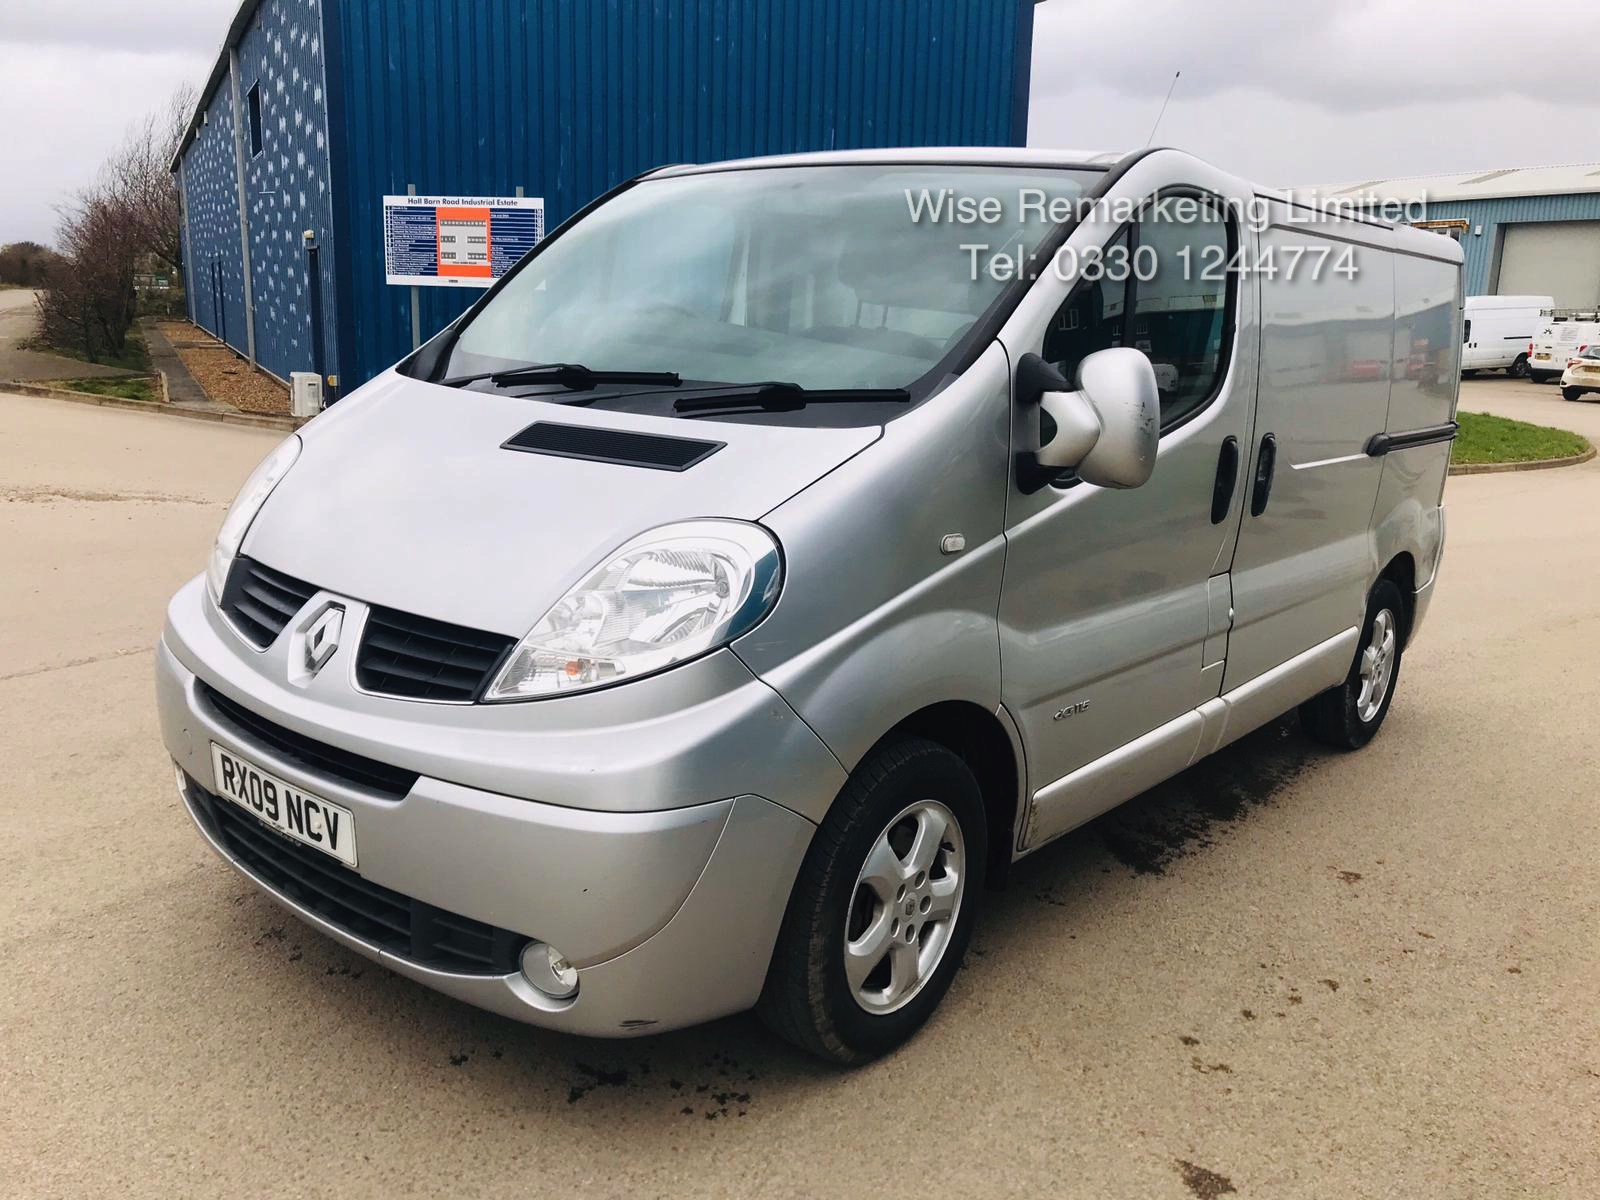 Renault Trafic Sport 2.0 DCI (115 BHP) **Automatic** - 2009 09 Reg - Air Con - Ply lined - Image 3 of 16